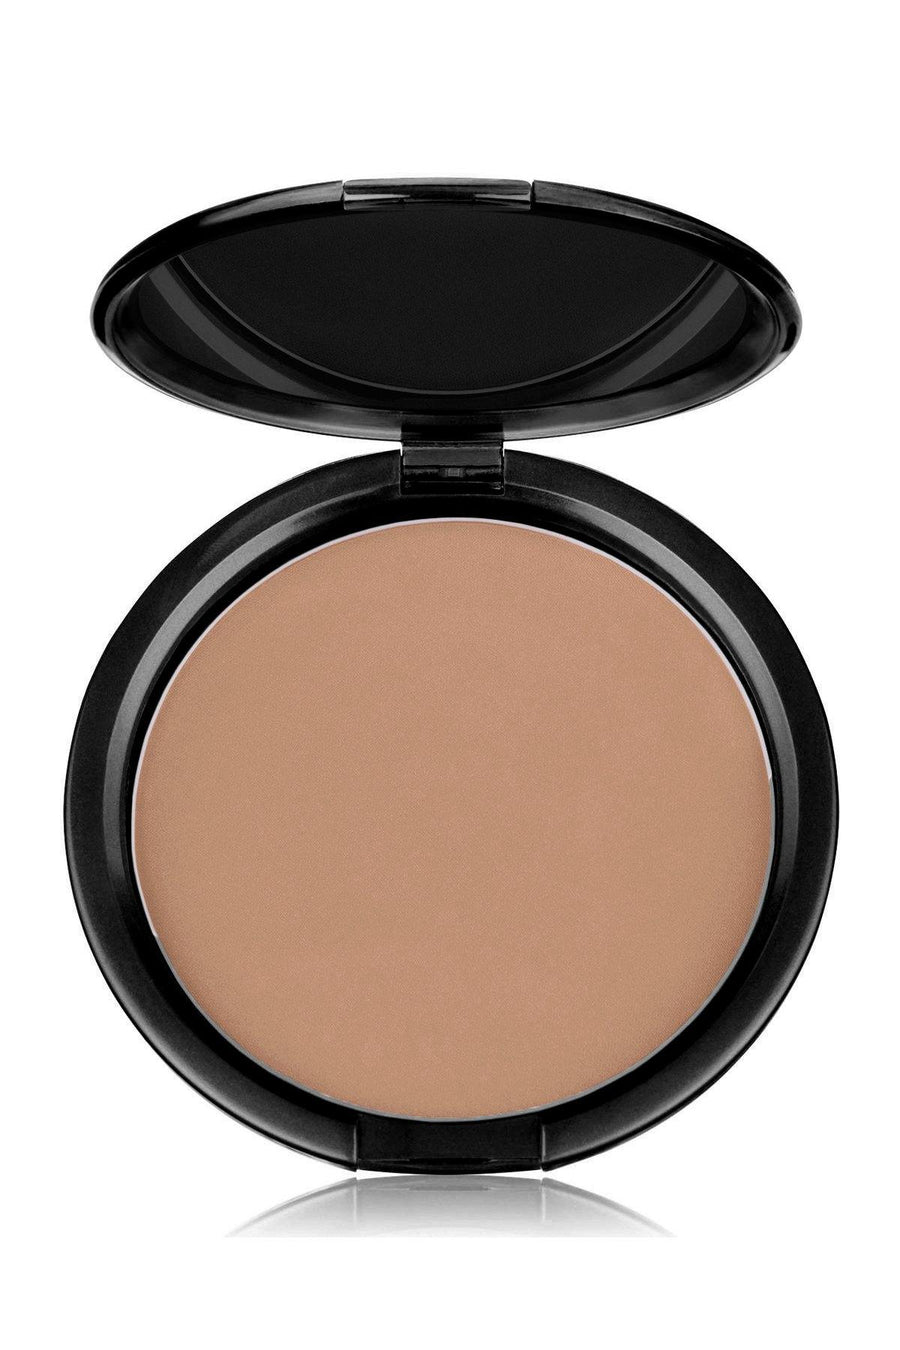 Foundation Pink Tone Dark Mineral Pressed Powder & Brush - Blend Mineral Cosmetics